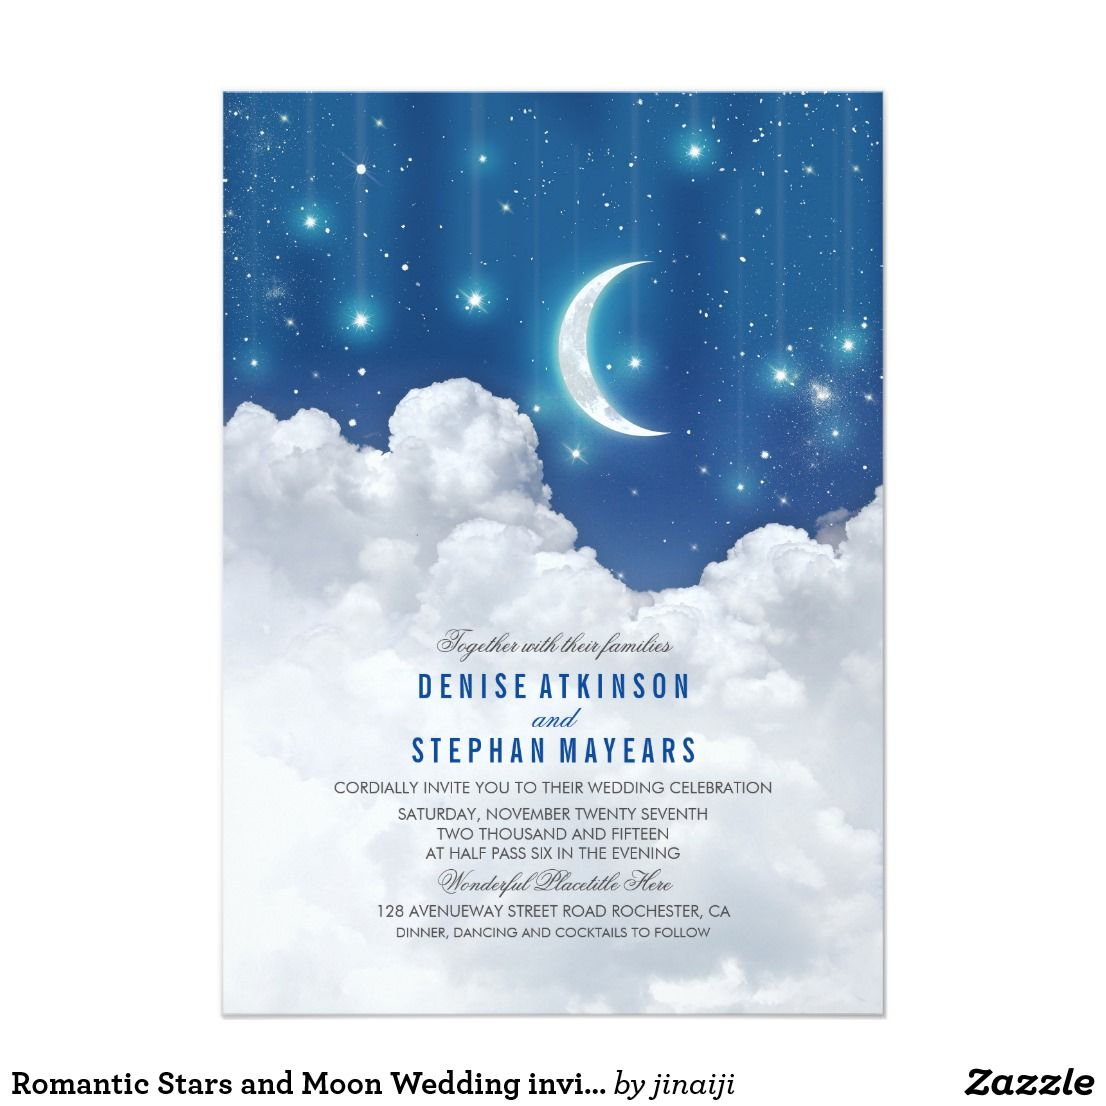 Romantic Stars And Moon Wedding Invitation Unique Dreamy With Blue Night Sky Inspired Invite For Starlit Outdoor: Blue Moon Wedding Invitations At Websimilar.org